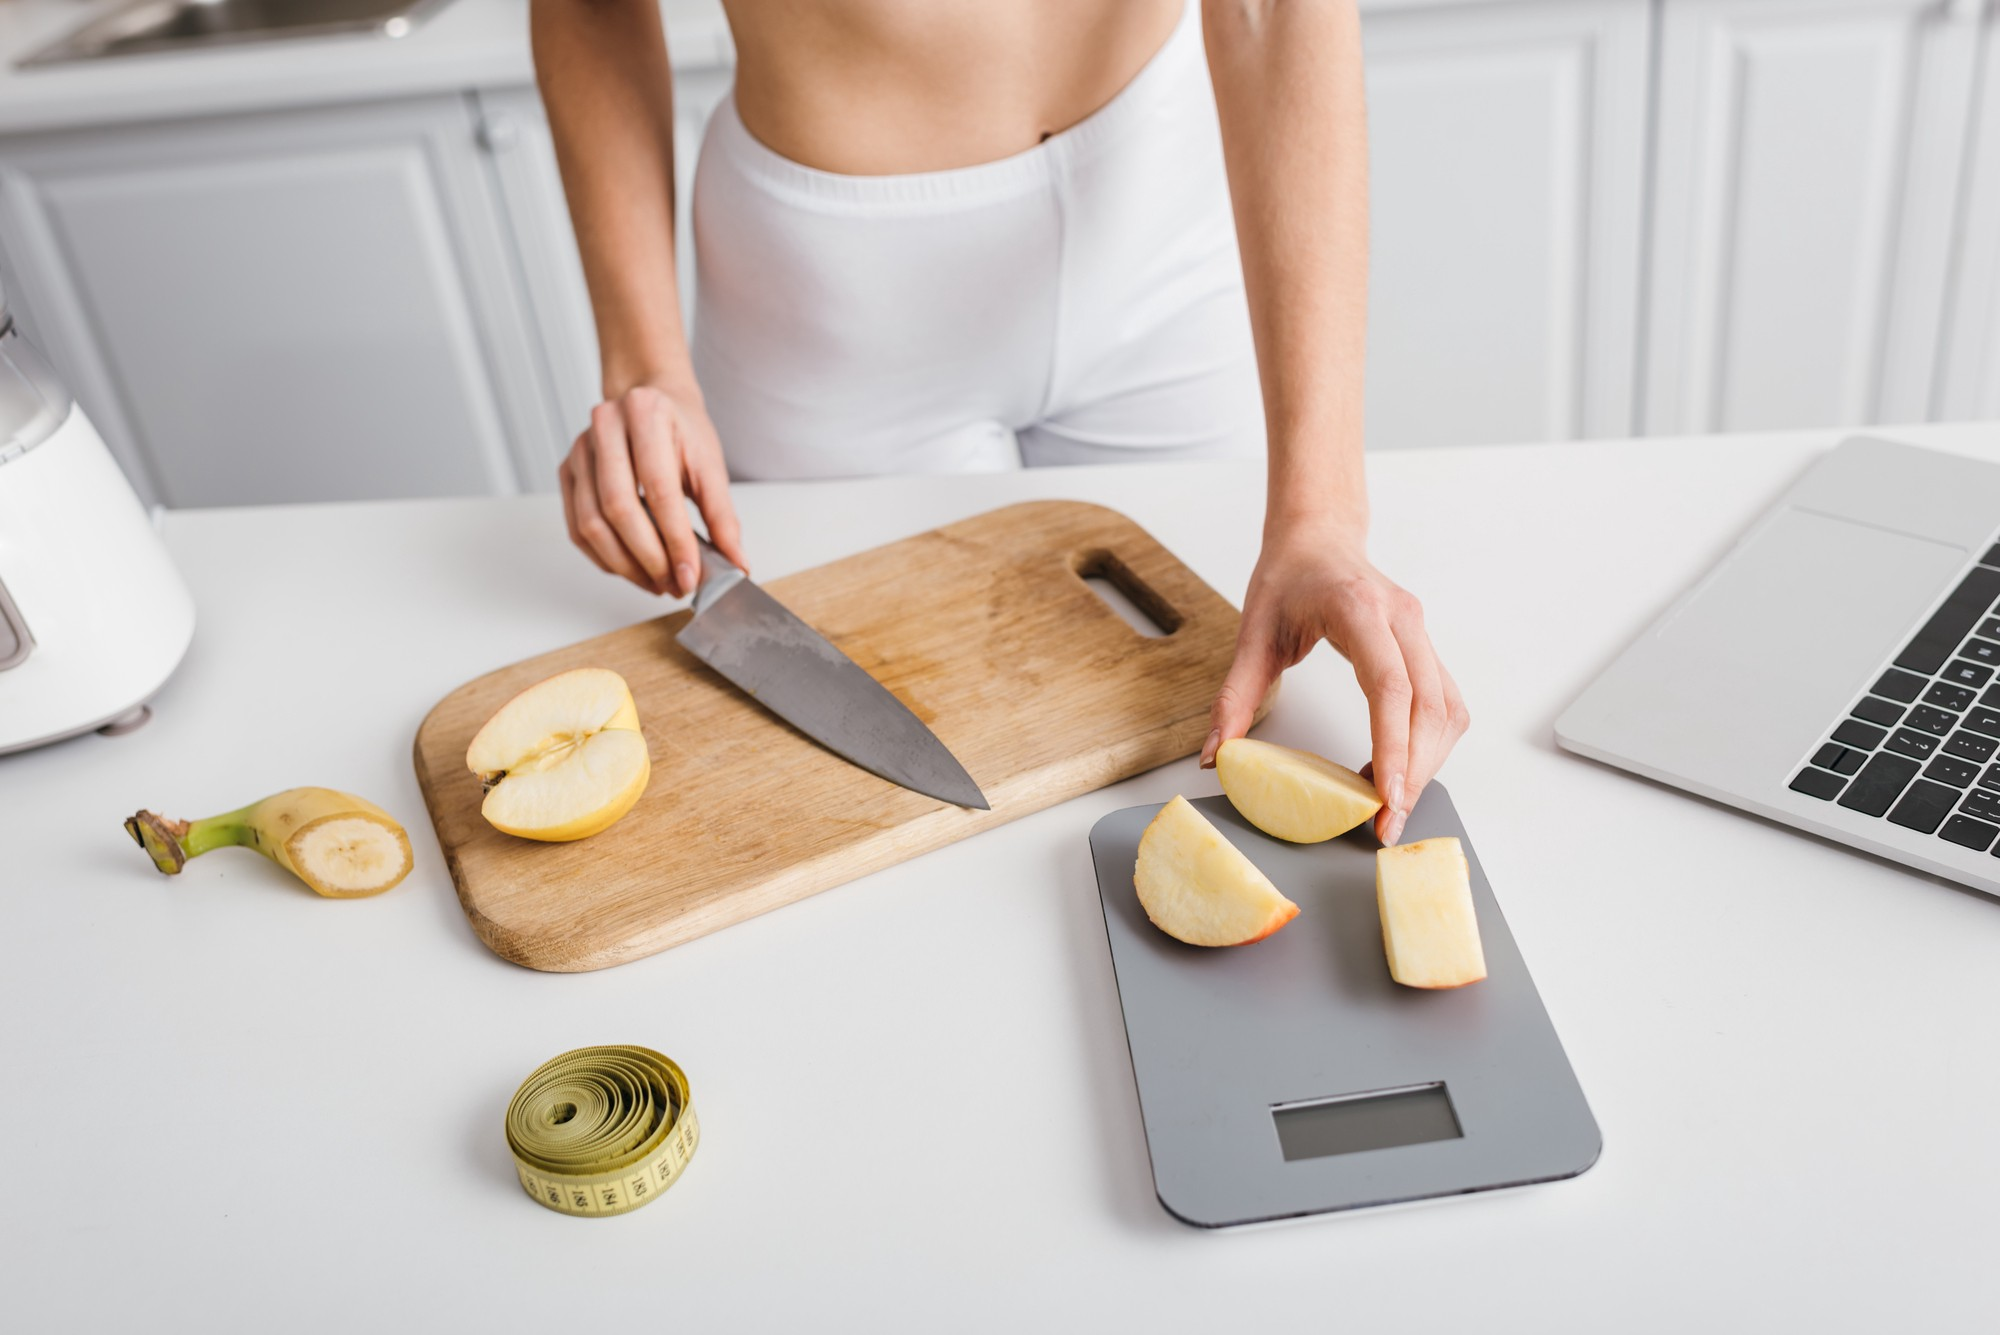 a woman weighing her food on a food scale